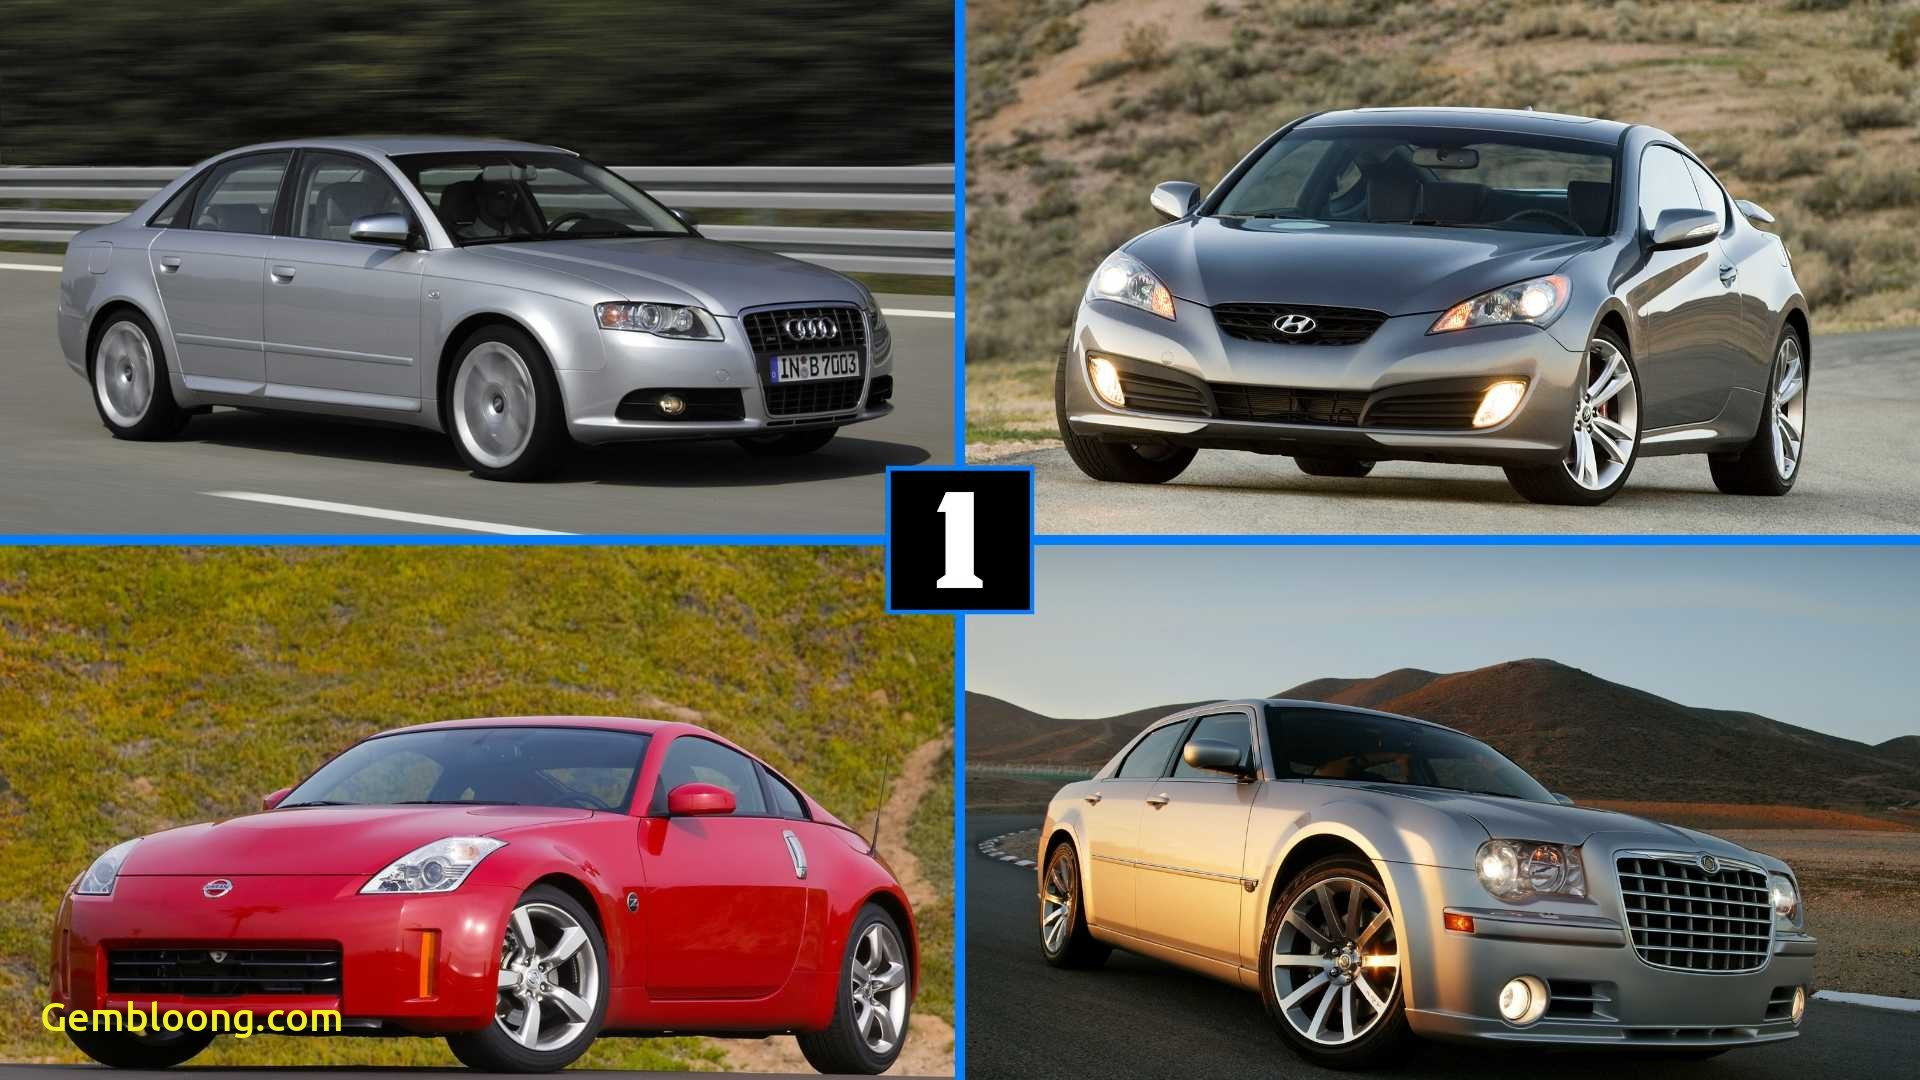 Cheap Used Cars for Sale Near Me Under 1000 New 300 Horsepower Cars You Can Snag for Under $10 000